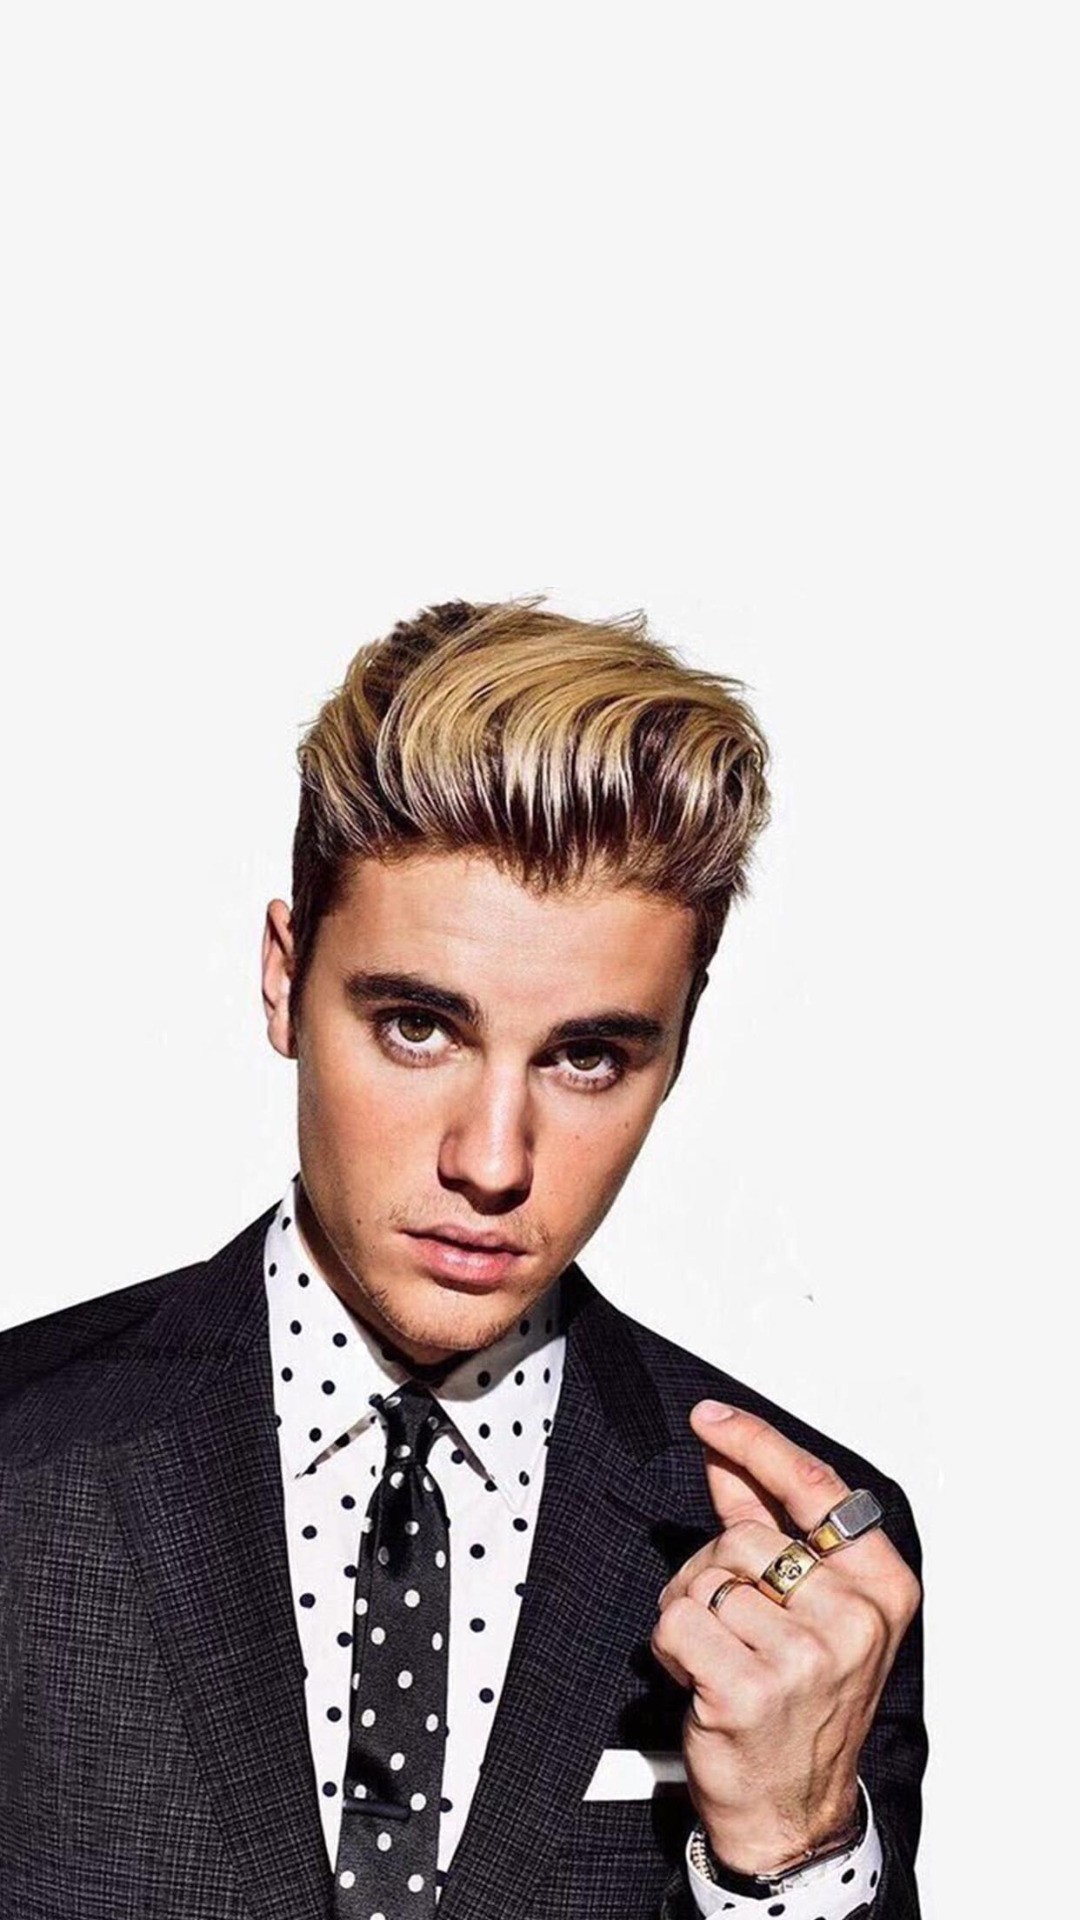 justin bieber hd 2018 wallpapers 67 images